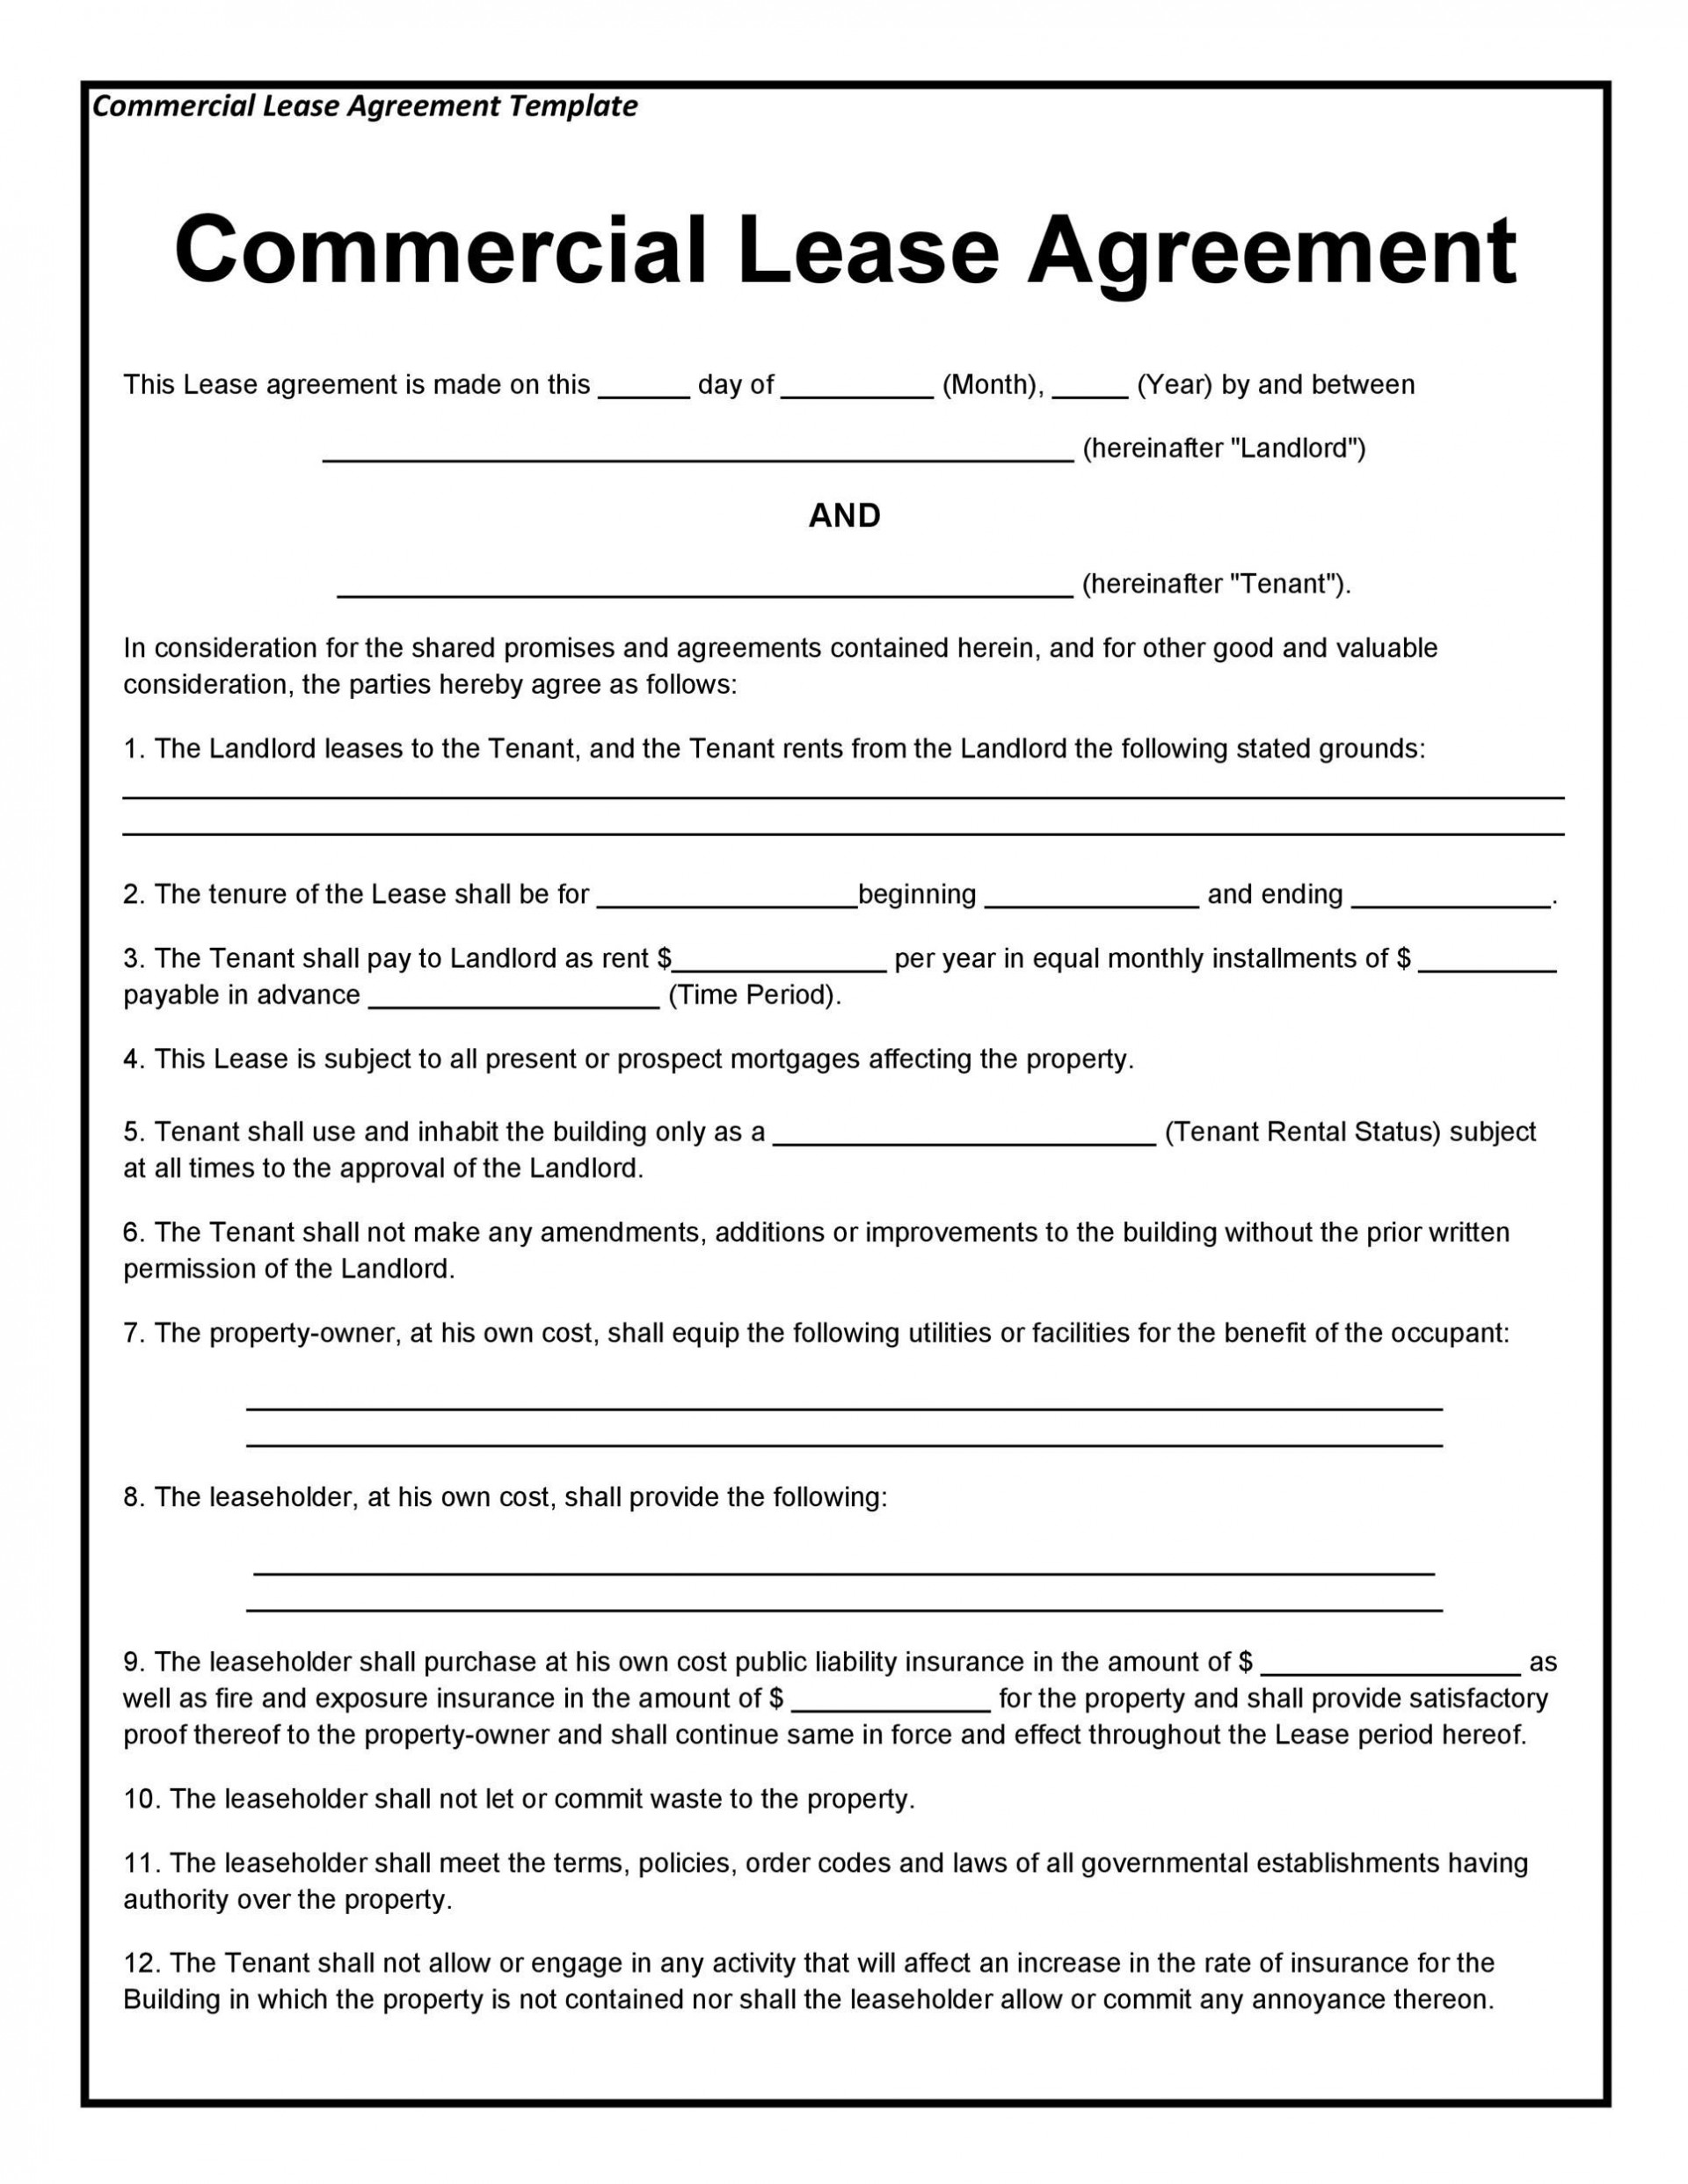 004 Top Rental Lease Template Free Download High Resolution  California Agreement Florida Word Format1920